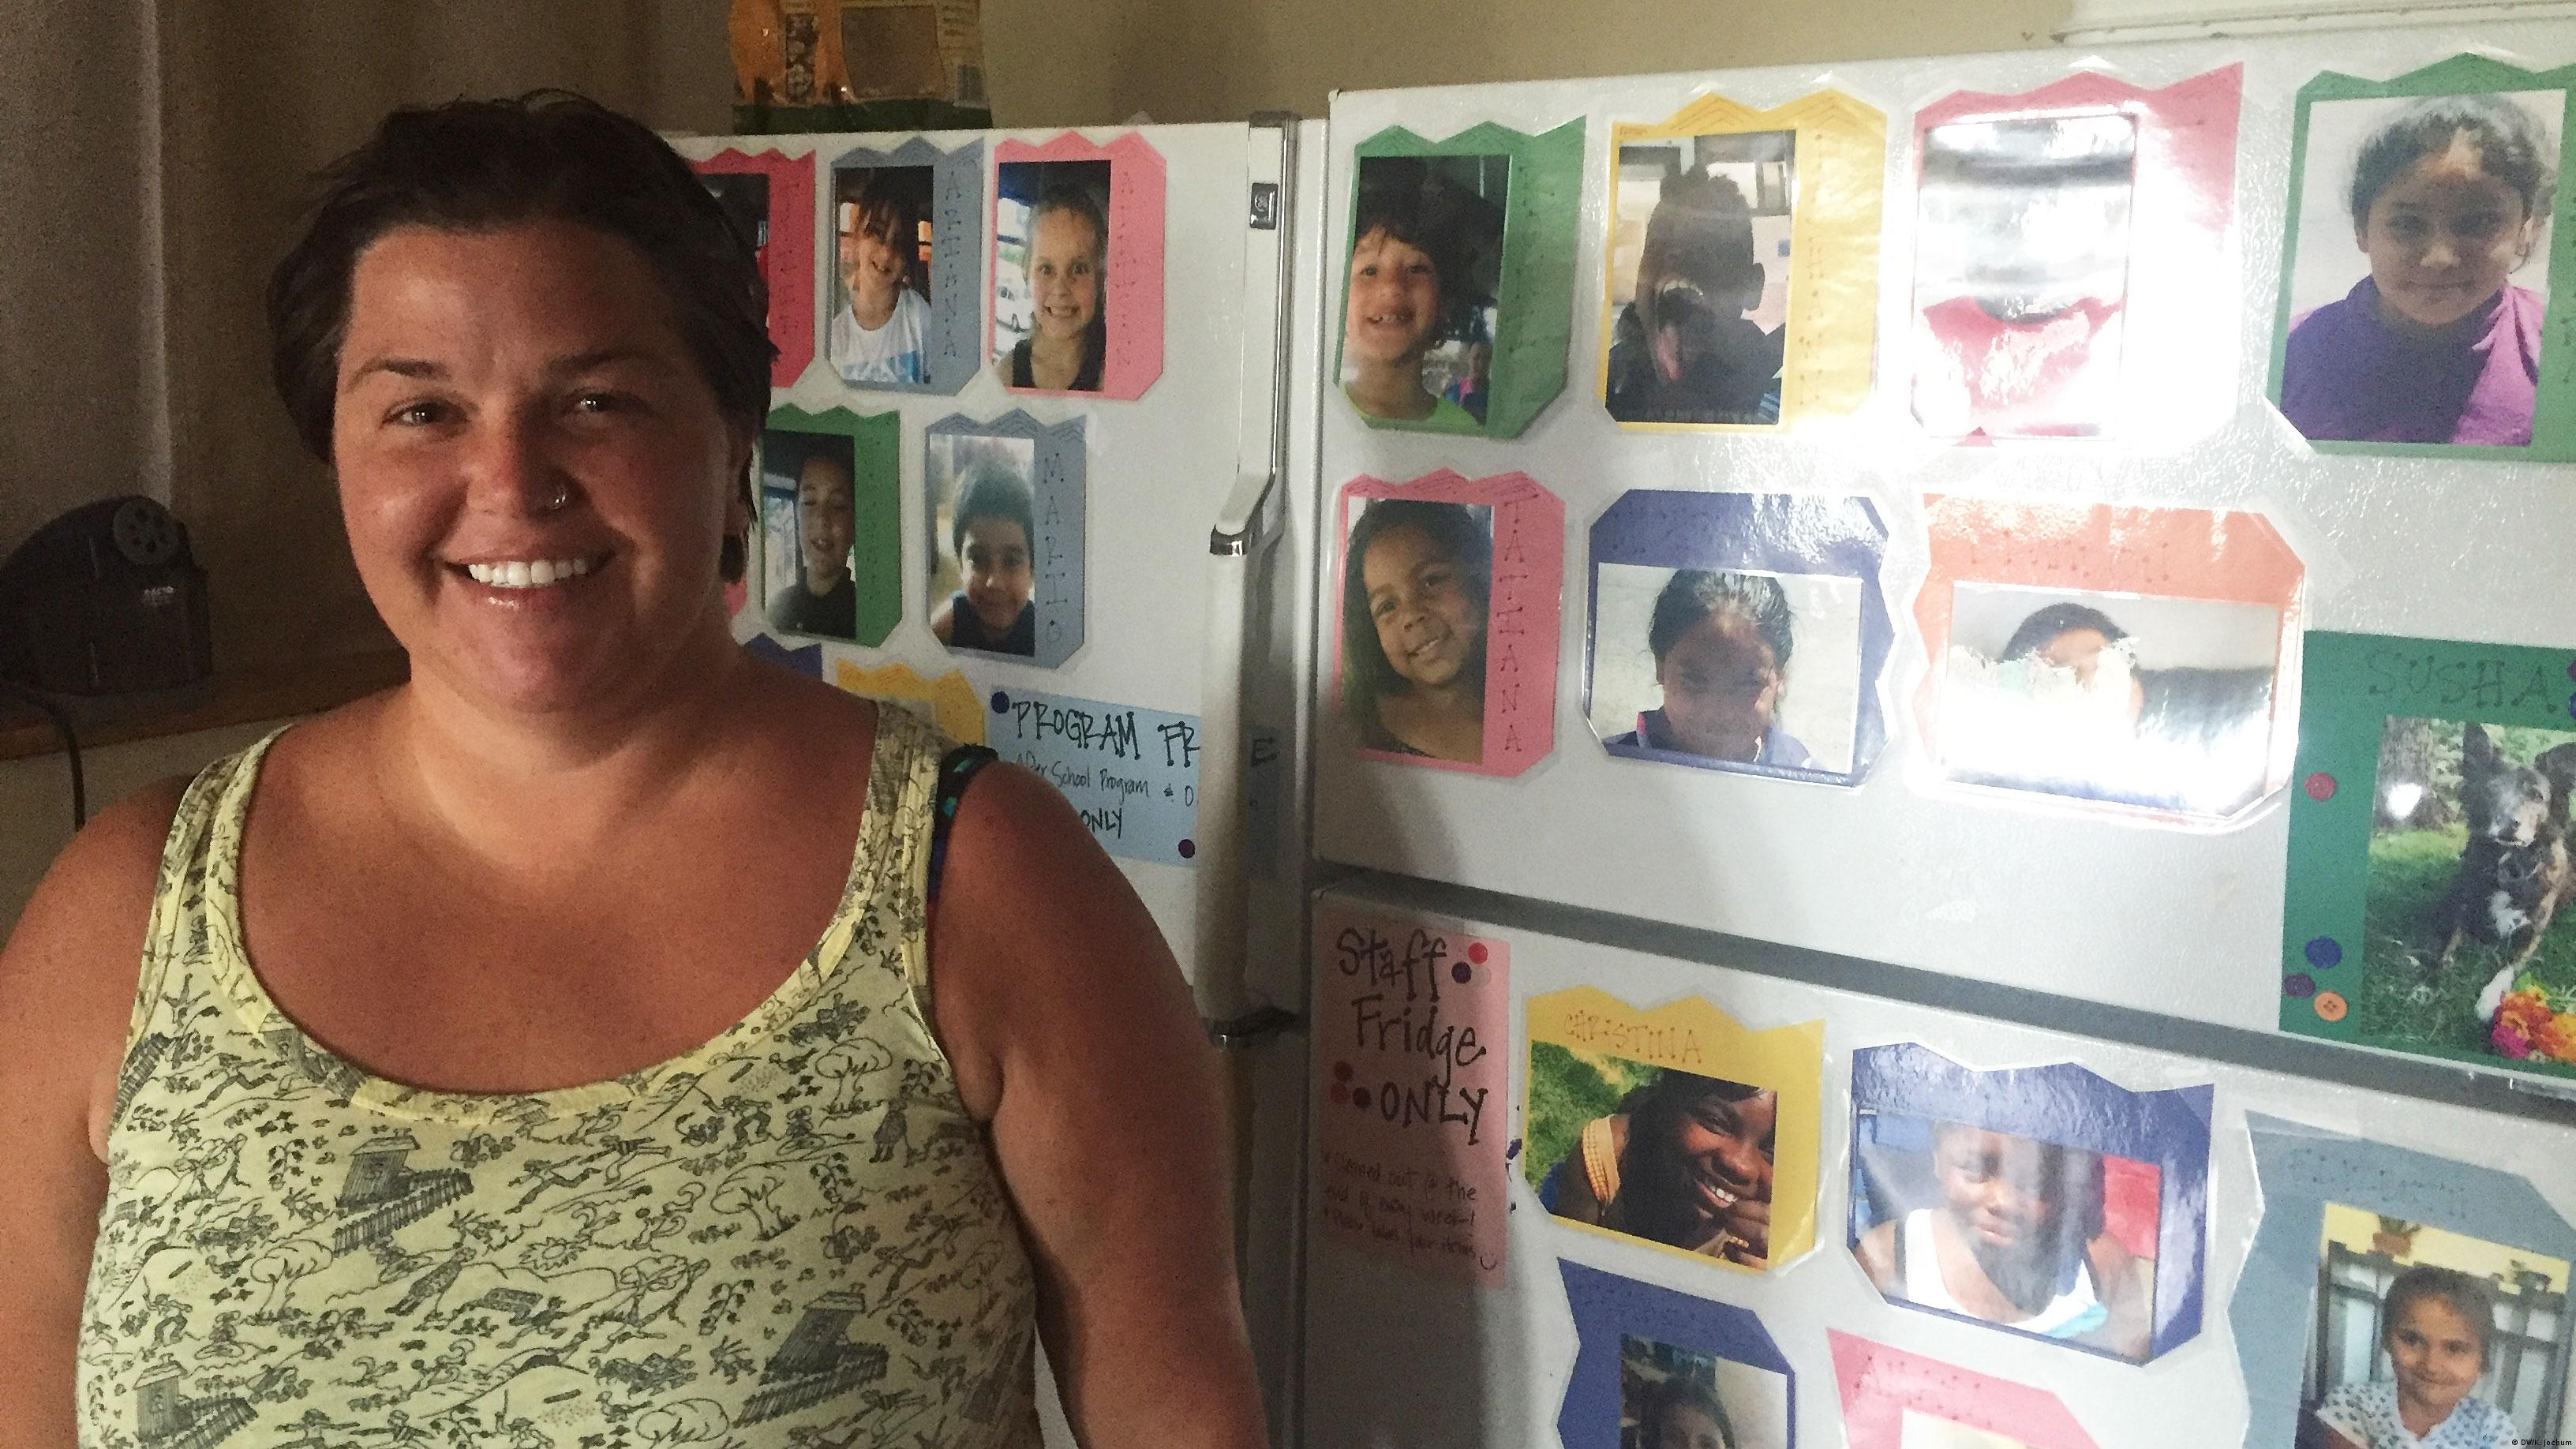 Megan Vizina stands in front of photos of the kids she works with